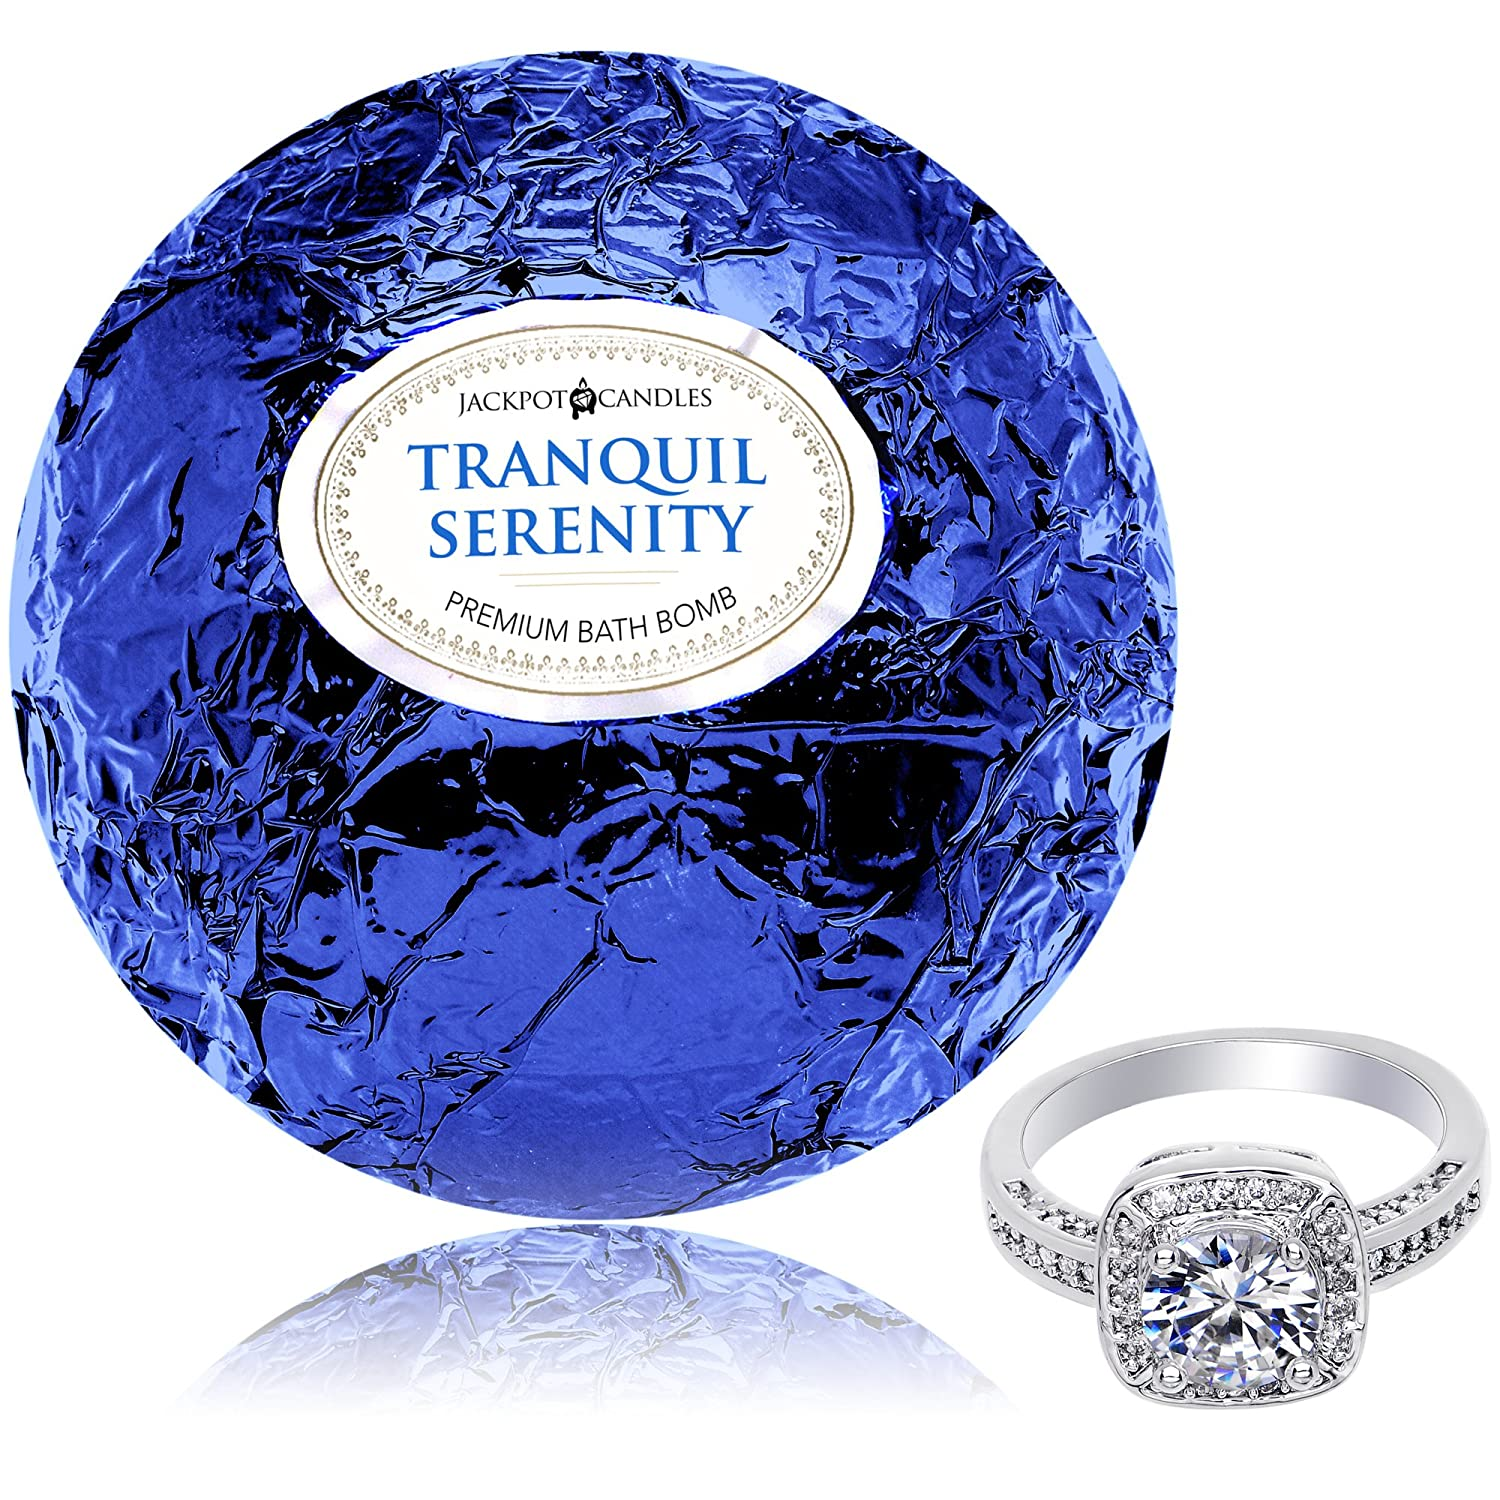 Bath Bomb with Surprise Size Ring Inside Tranquil Serenity Extra Large 10 oz. Made in USA Jackpot Candles